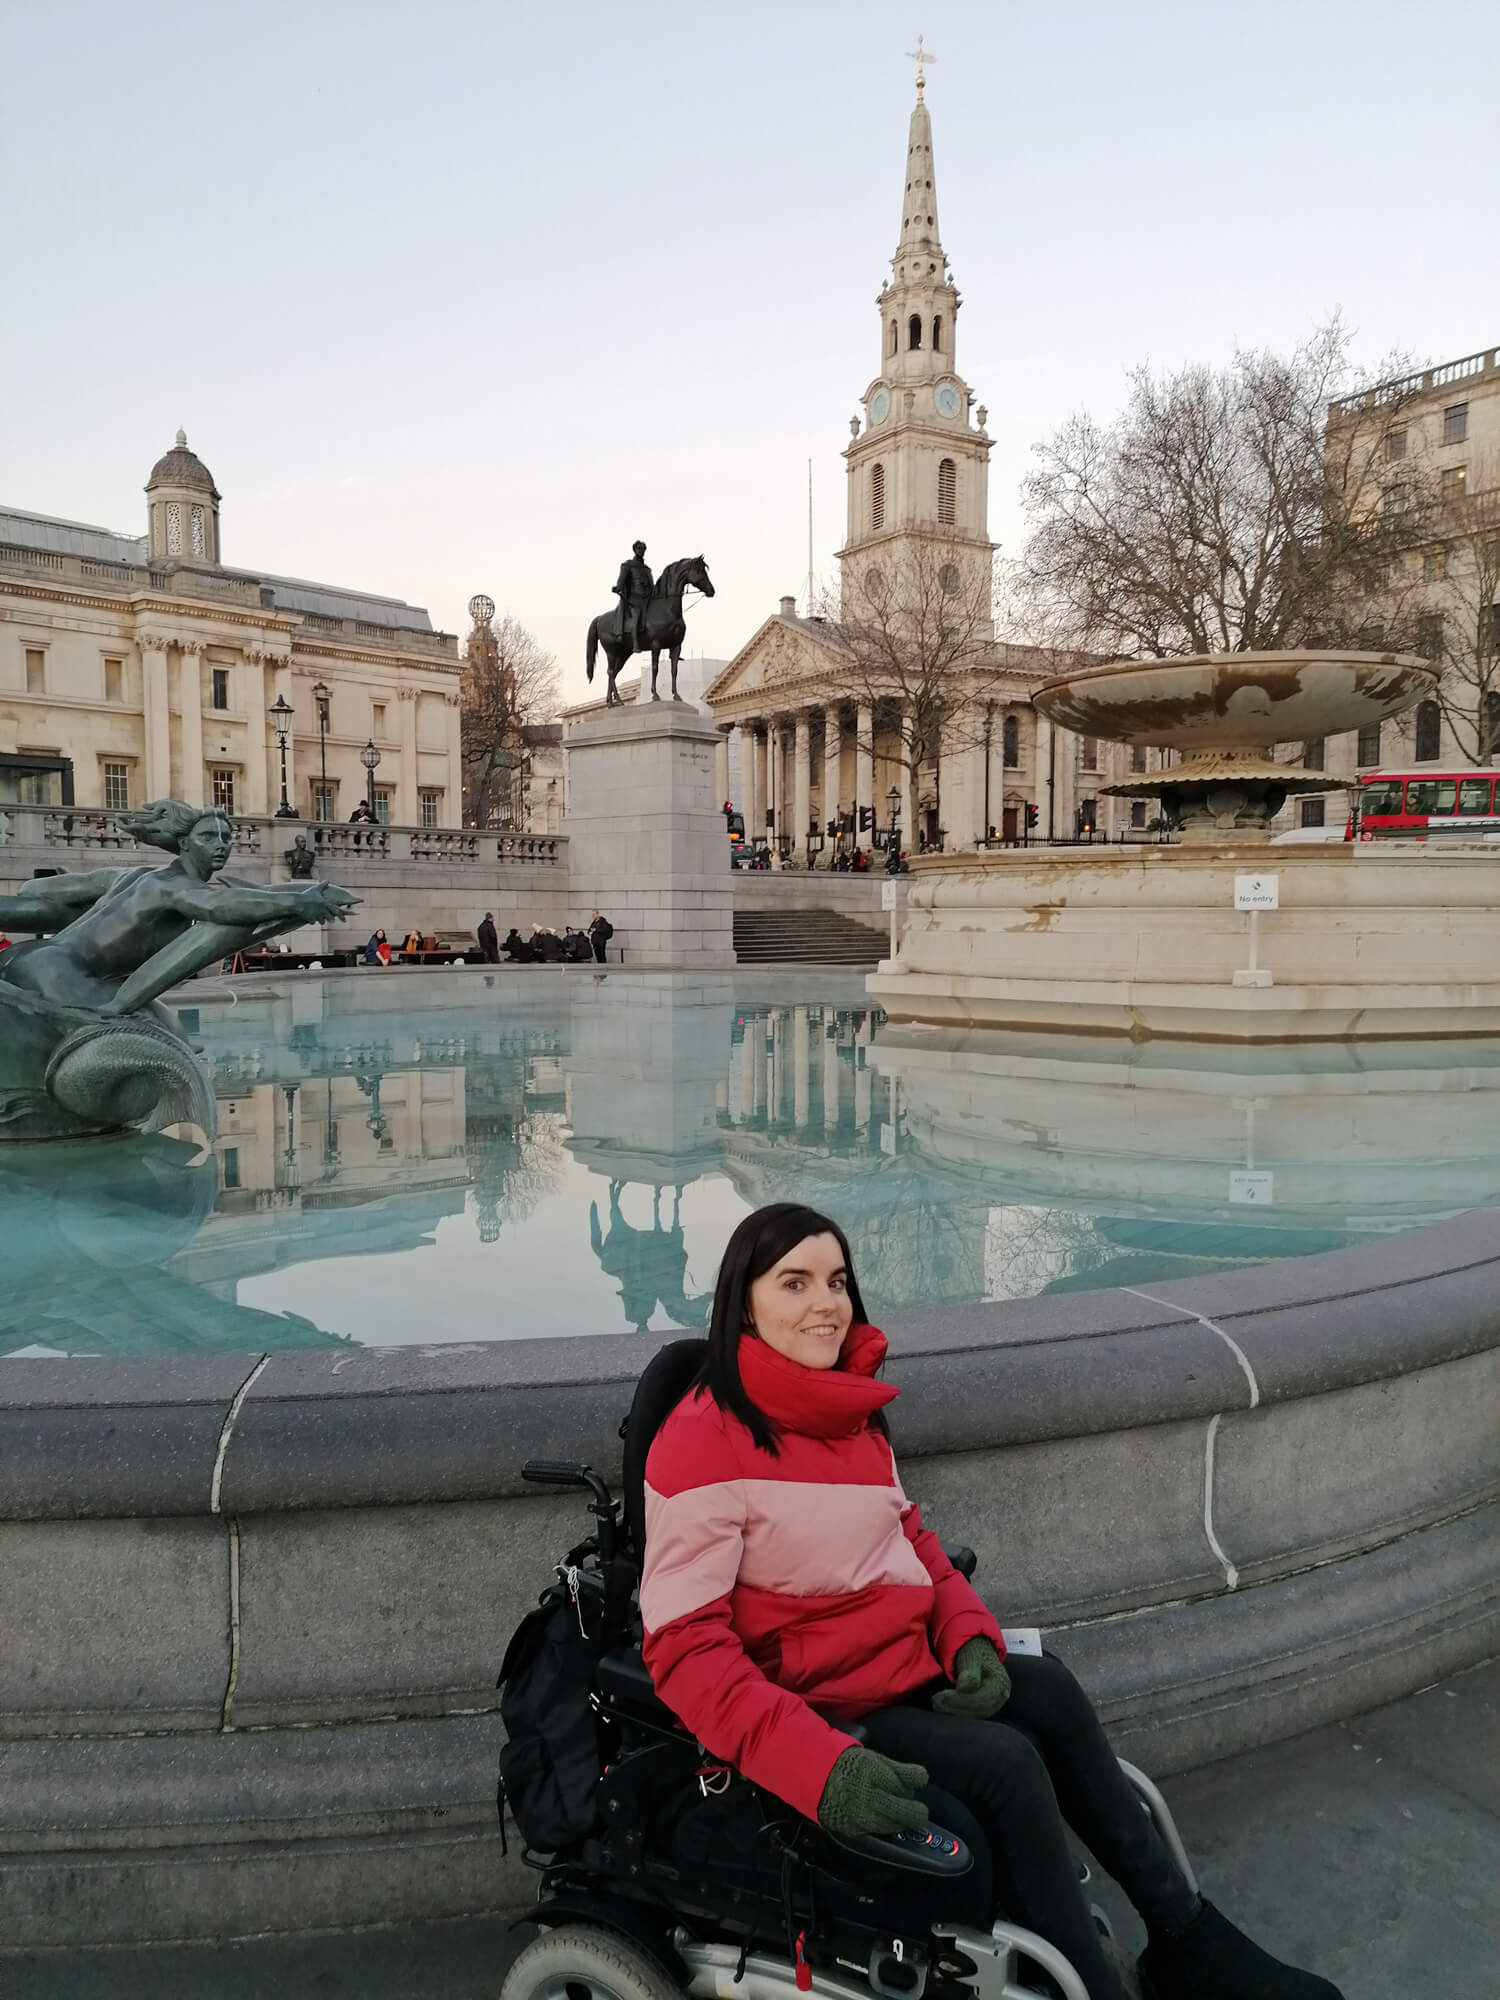 Emma is wearing a red puffy jacket and is sitting next to the Trafalgar Square fountain